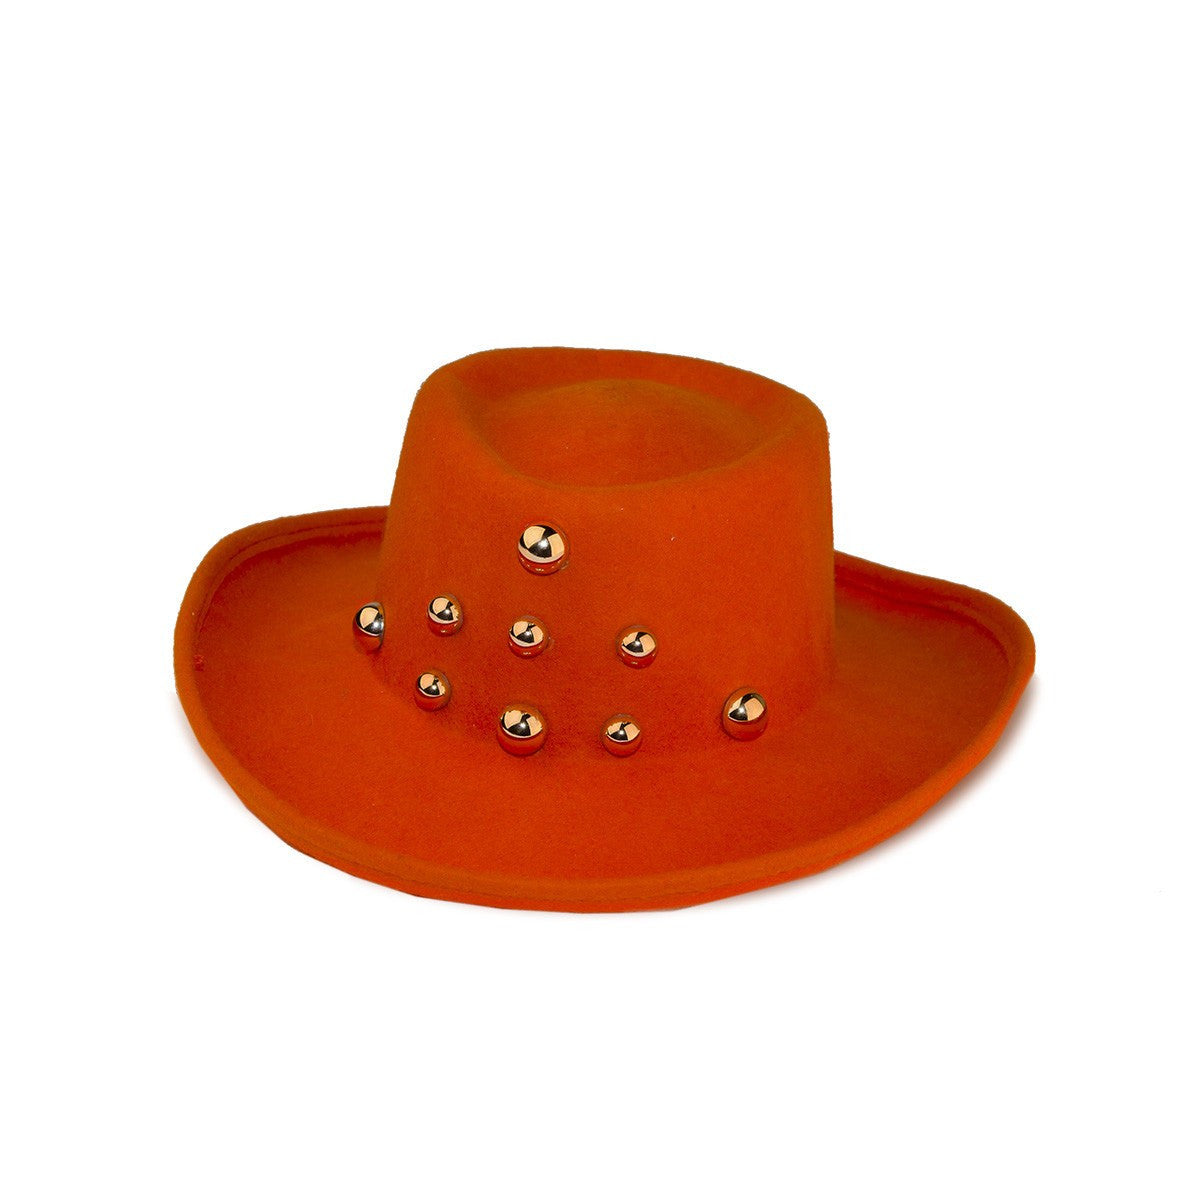 1970s Orange Wide Brim Hat, Molded Wool Felt, Large Gold Studs, Hat Size 21